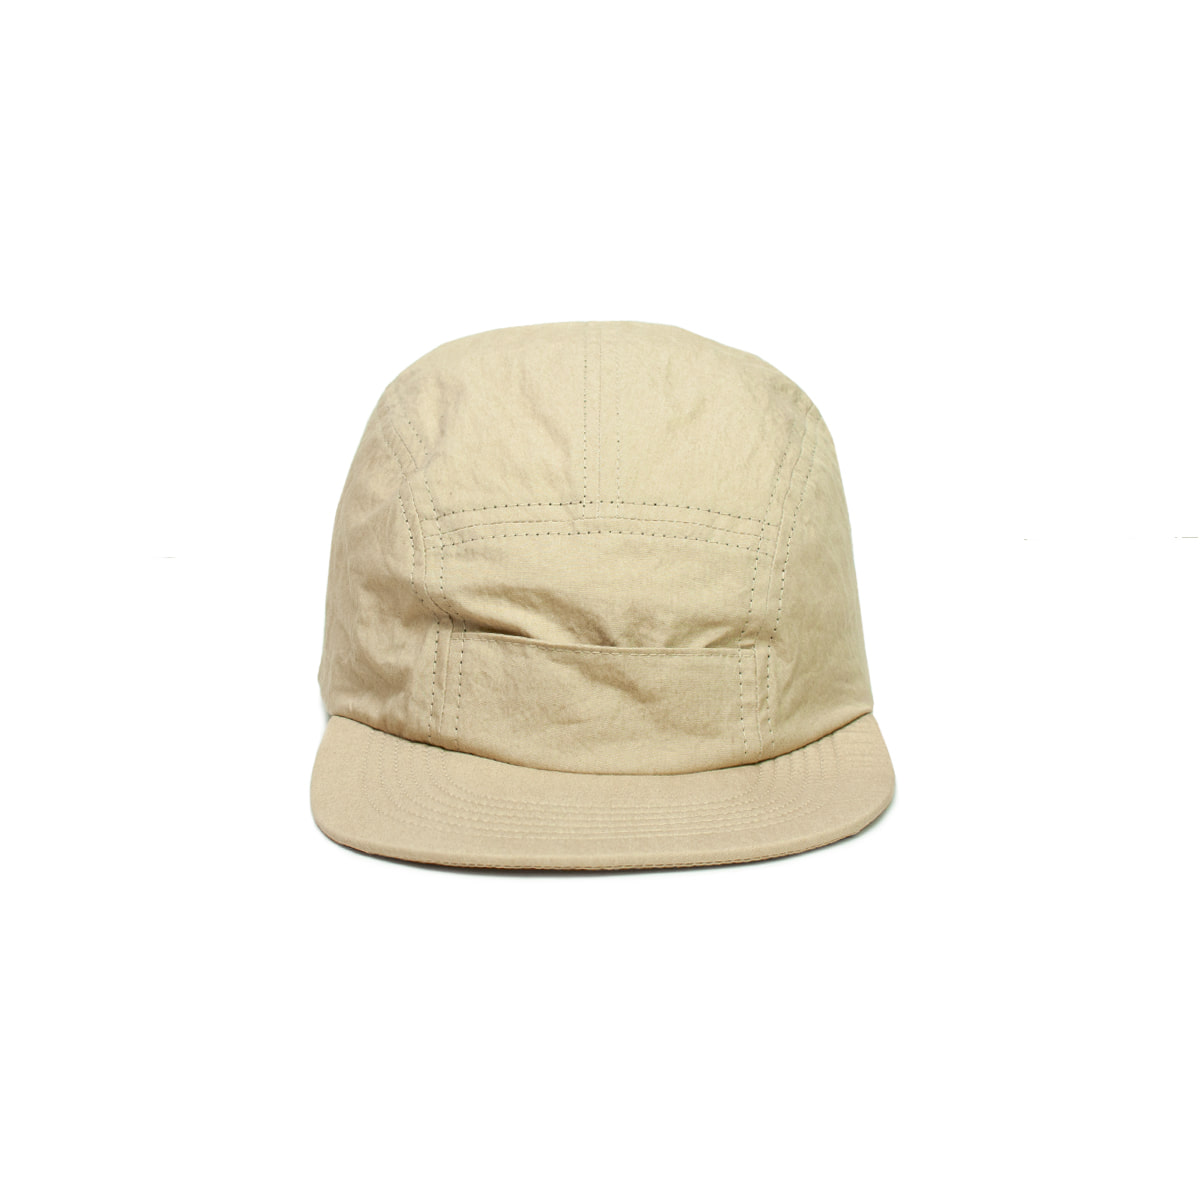 [INFILEDER DESIGN] HB CAP 'BEIGE'